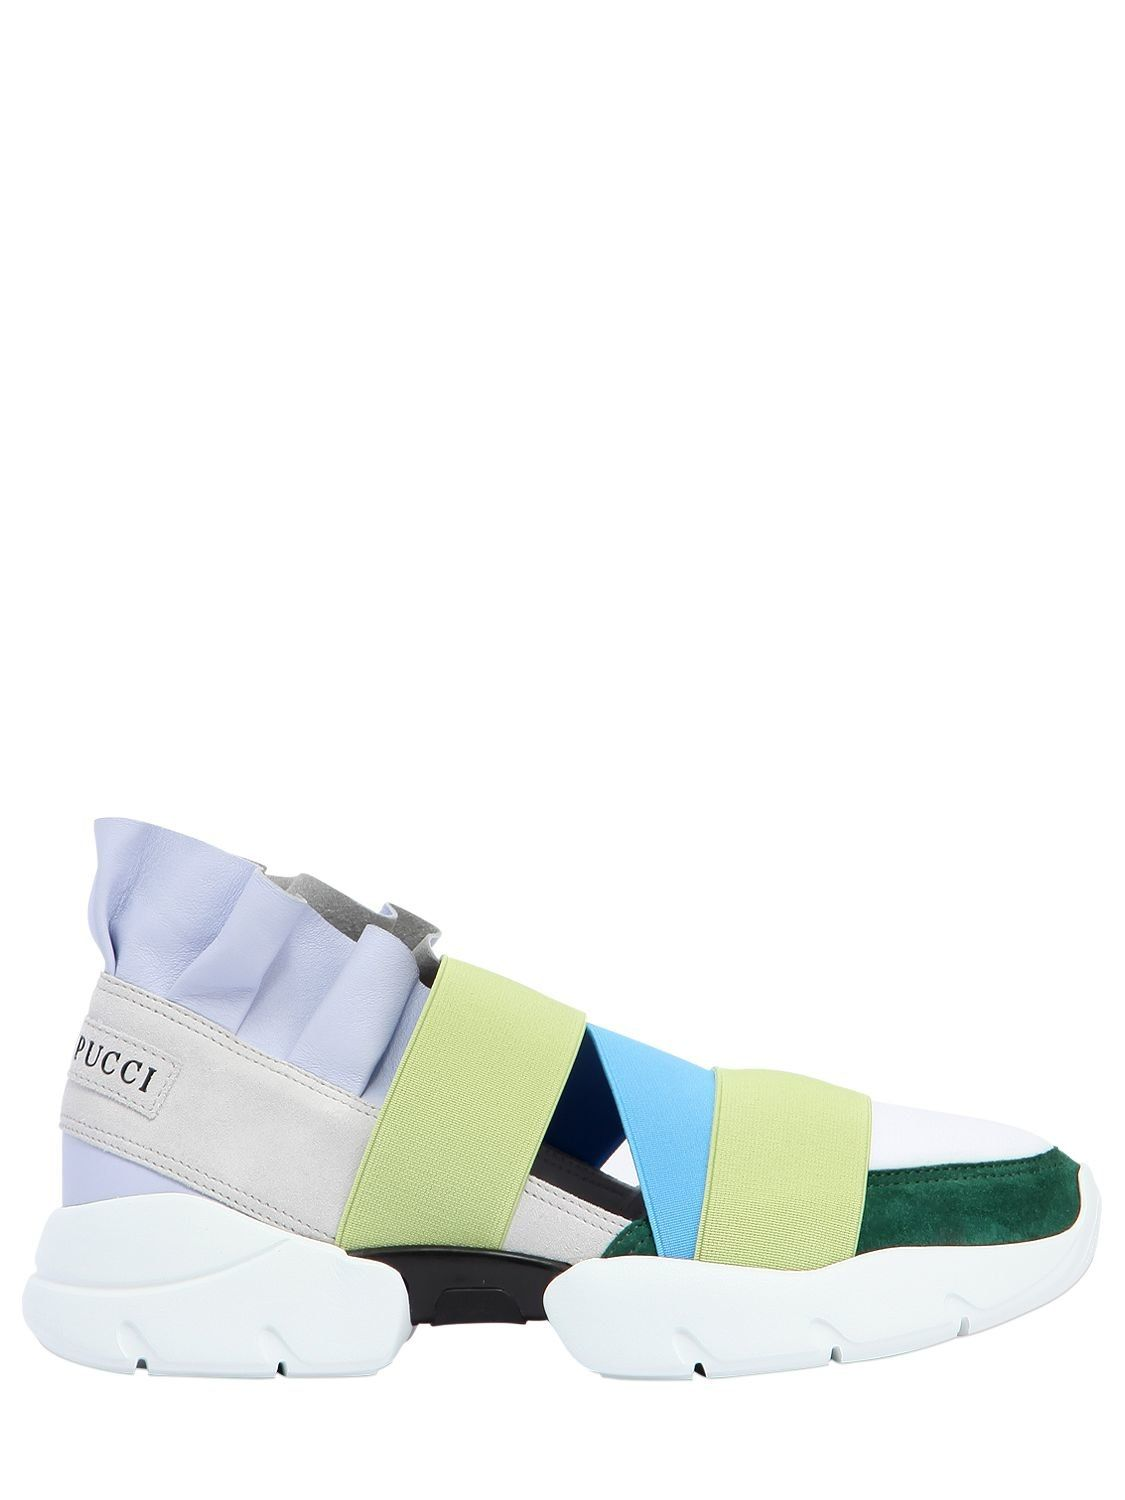 Emilio Pucci 30MM RUFFLED SUEDE & LEATHER SNEAKERS Low Price Fee Shipping For Sale HCFRFts